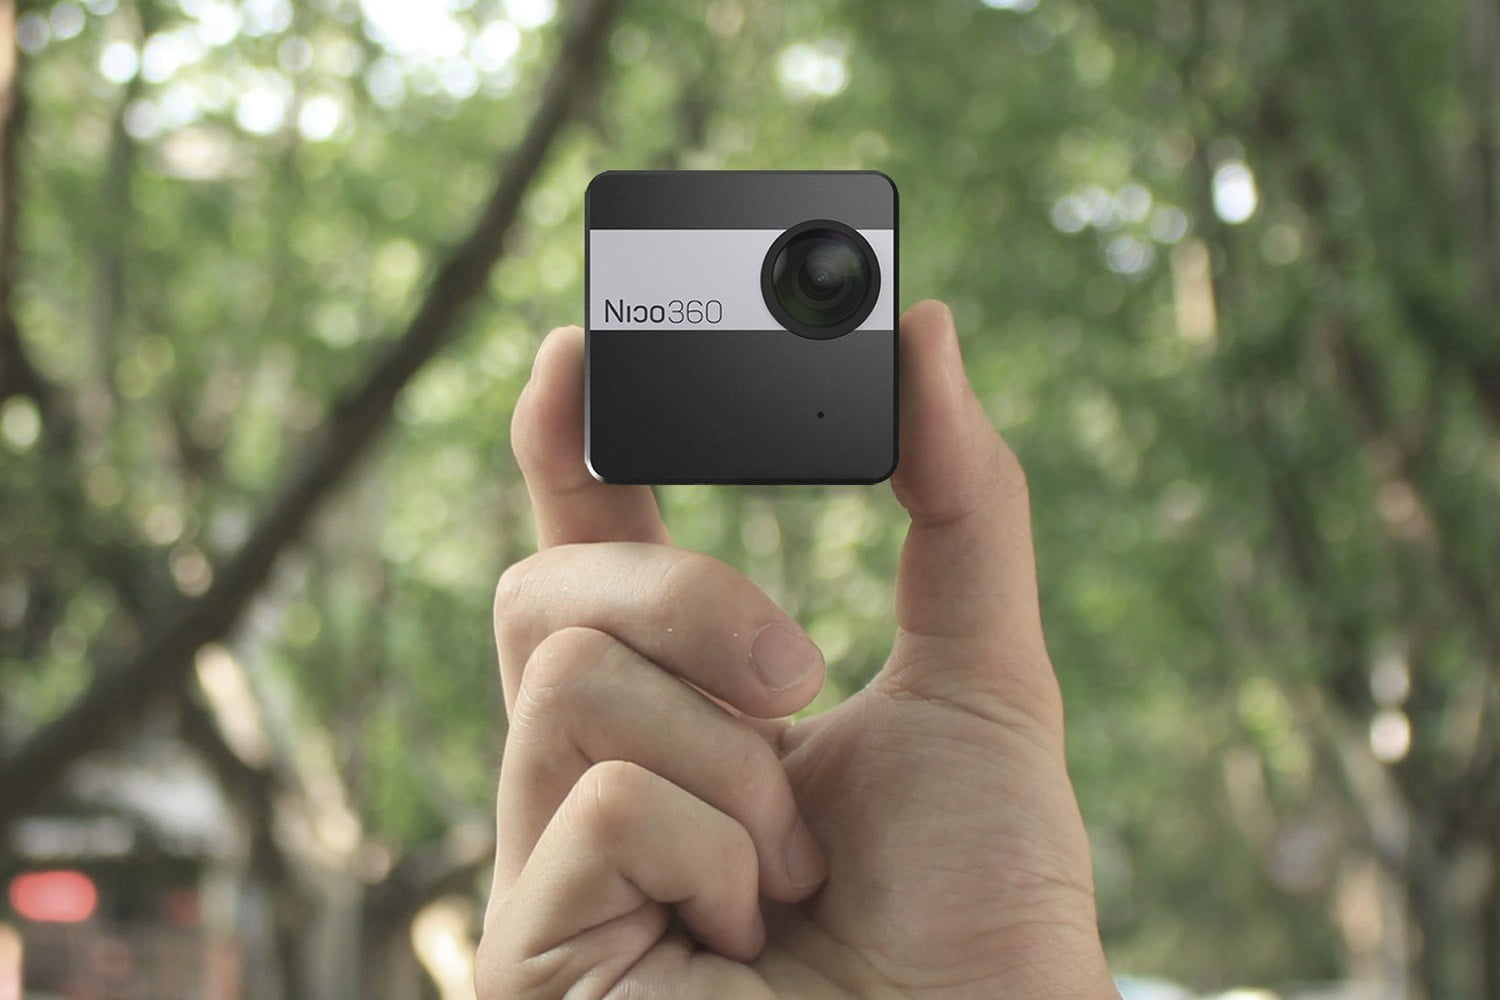 World's smallest 360-degree camera is loaded with big features